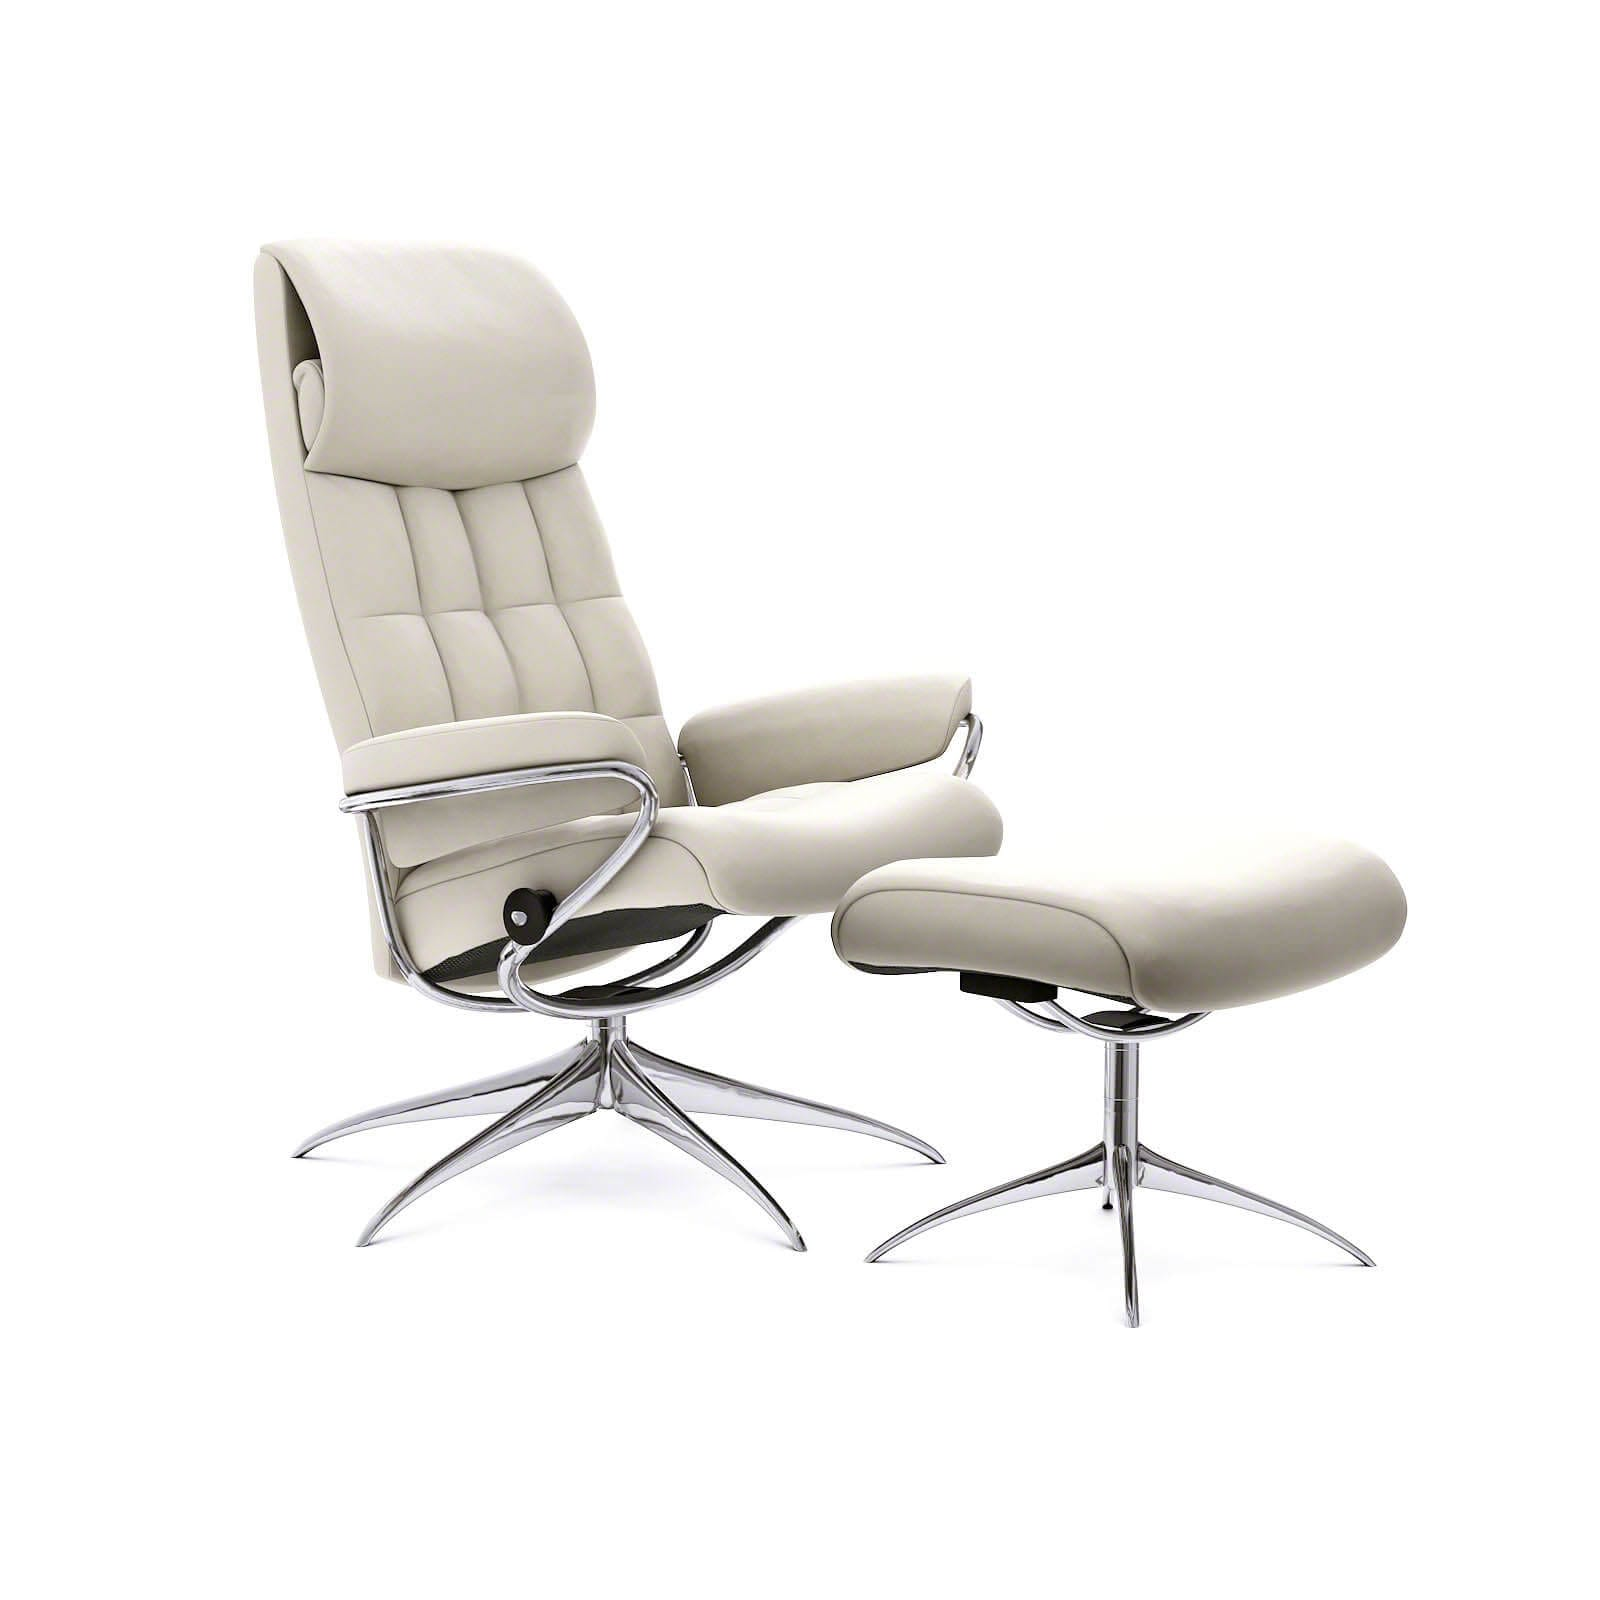 Stressless Magic Signature Sessel Stressless Fernsehsessel Angebote. Stressless City Sessel